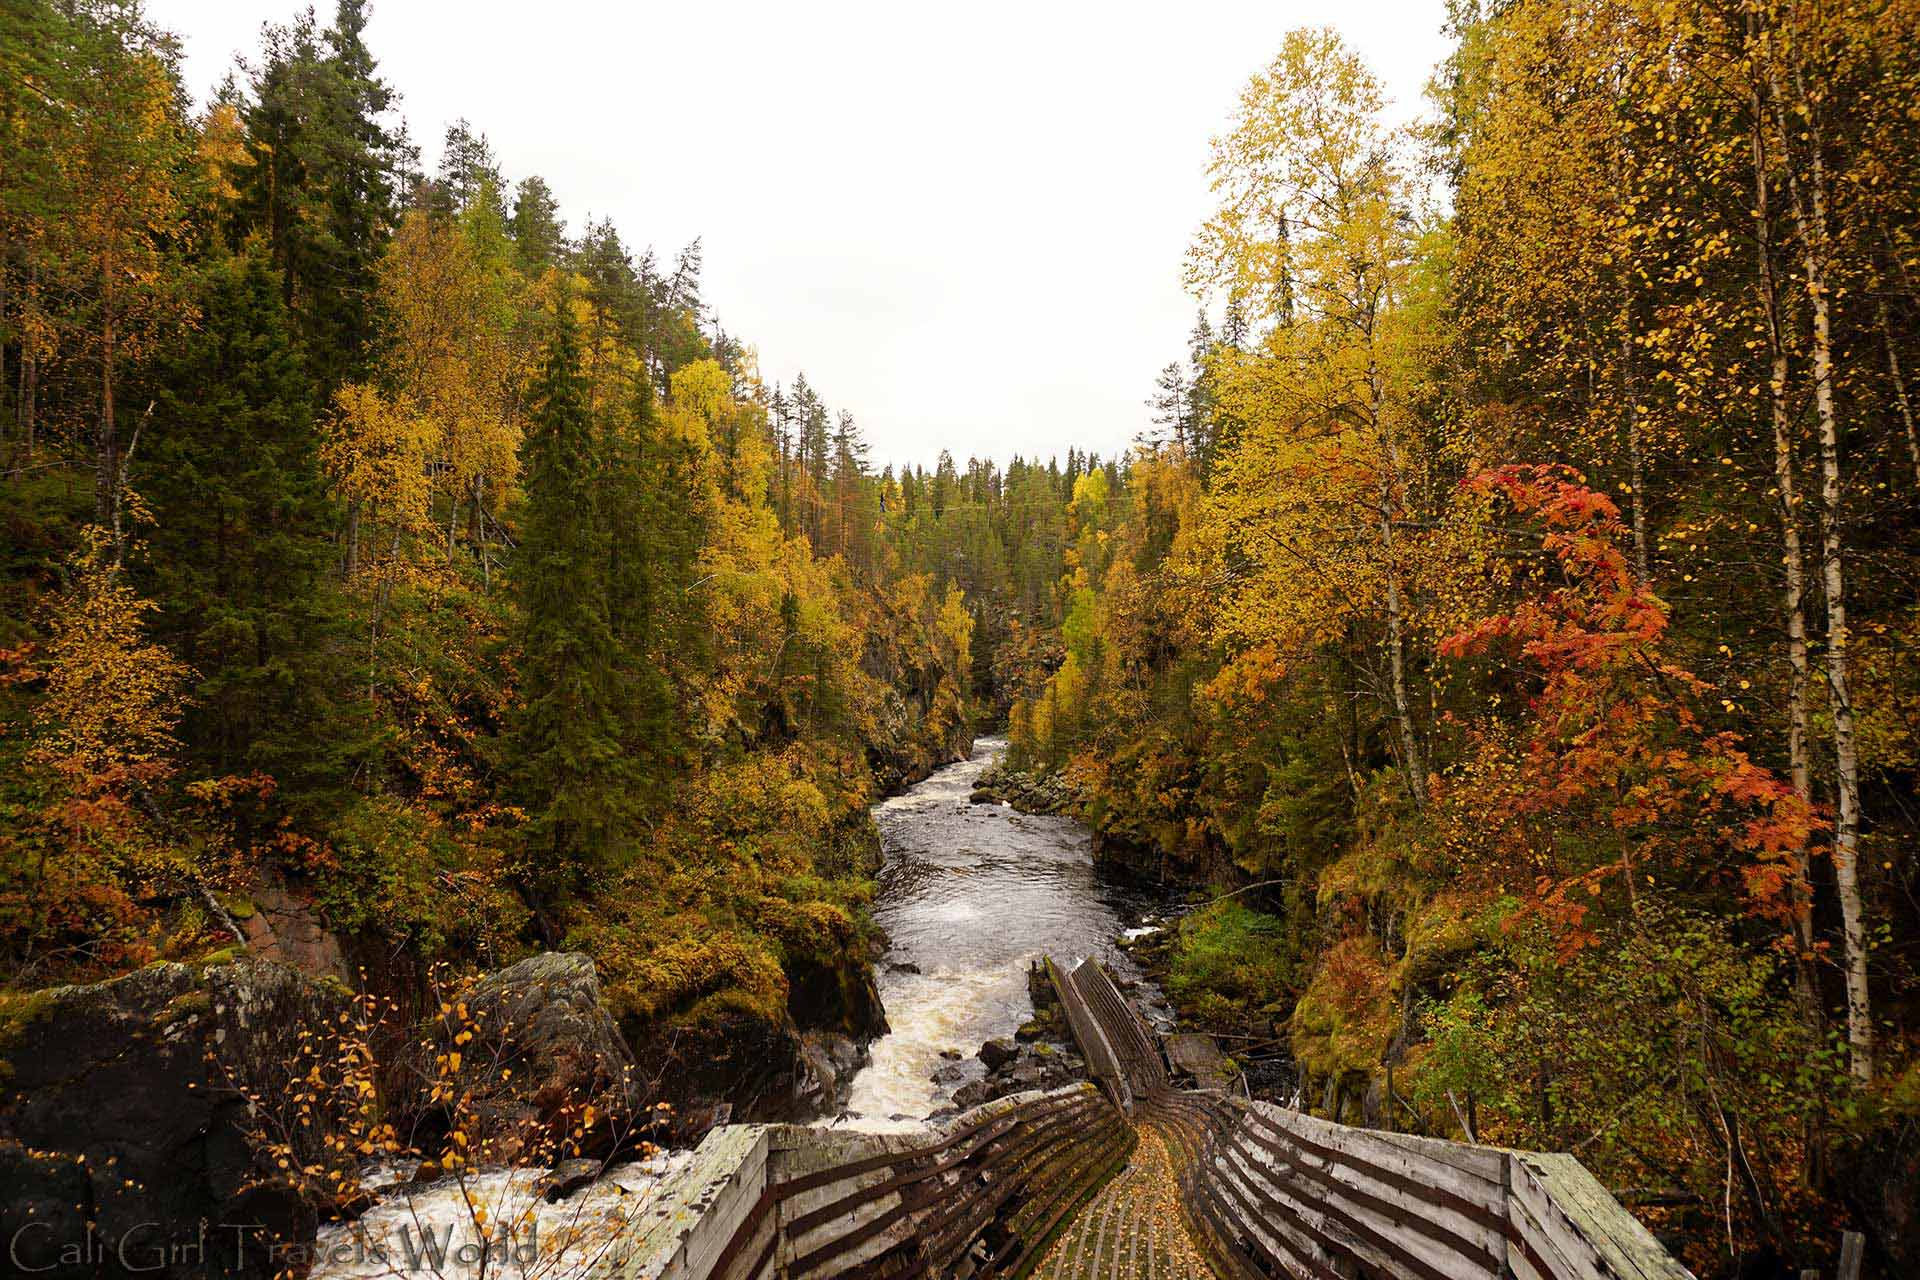 A old logging chute down the waterfall of Auttikongas near Rovaniemi, Lapland, Finland.